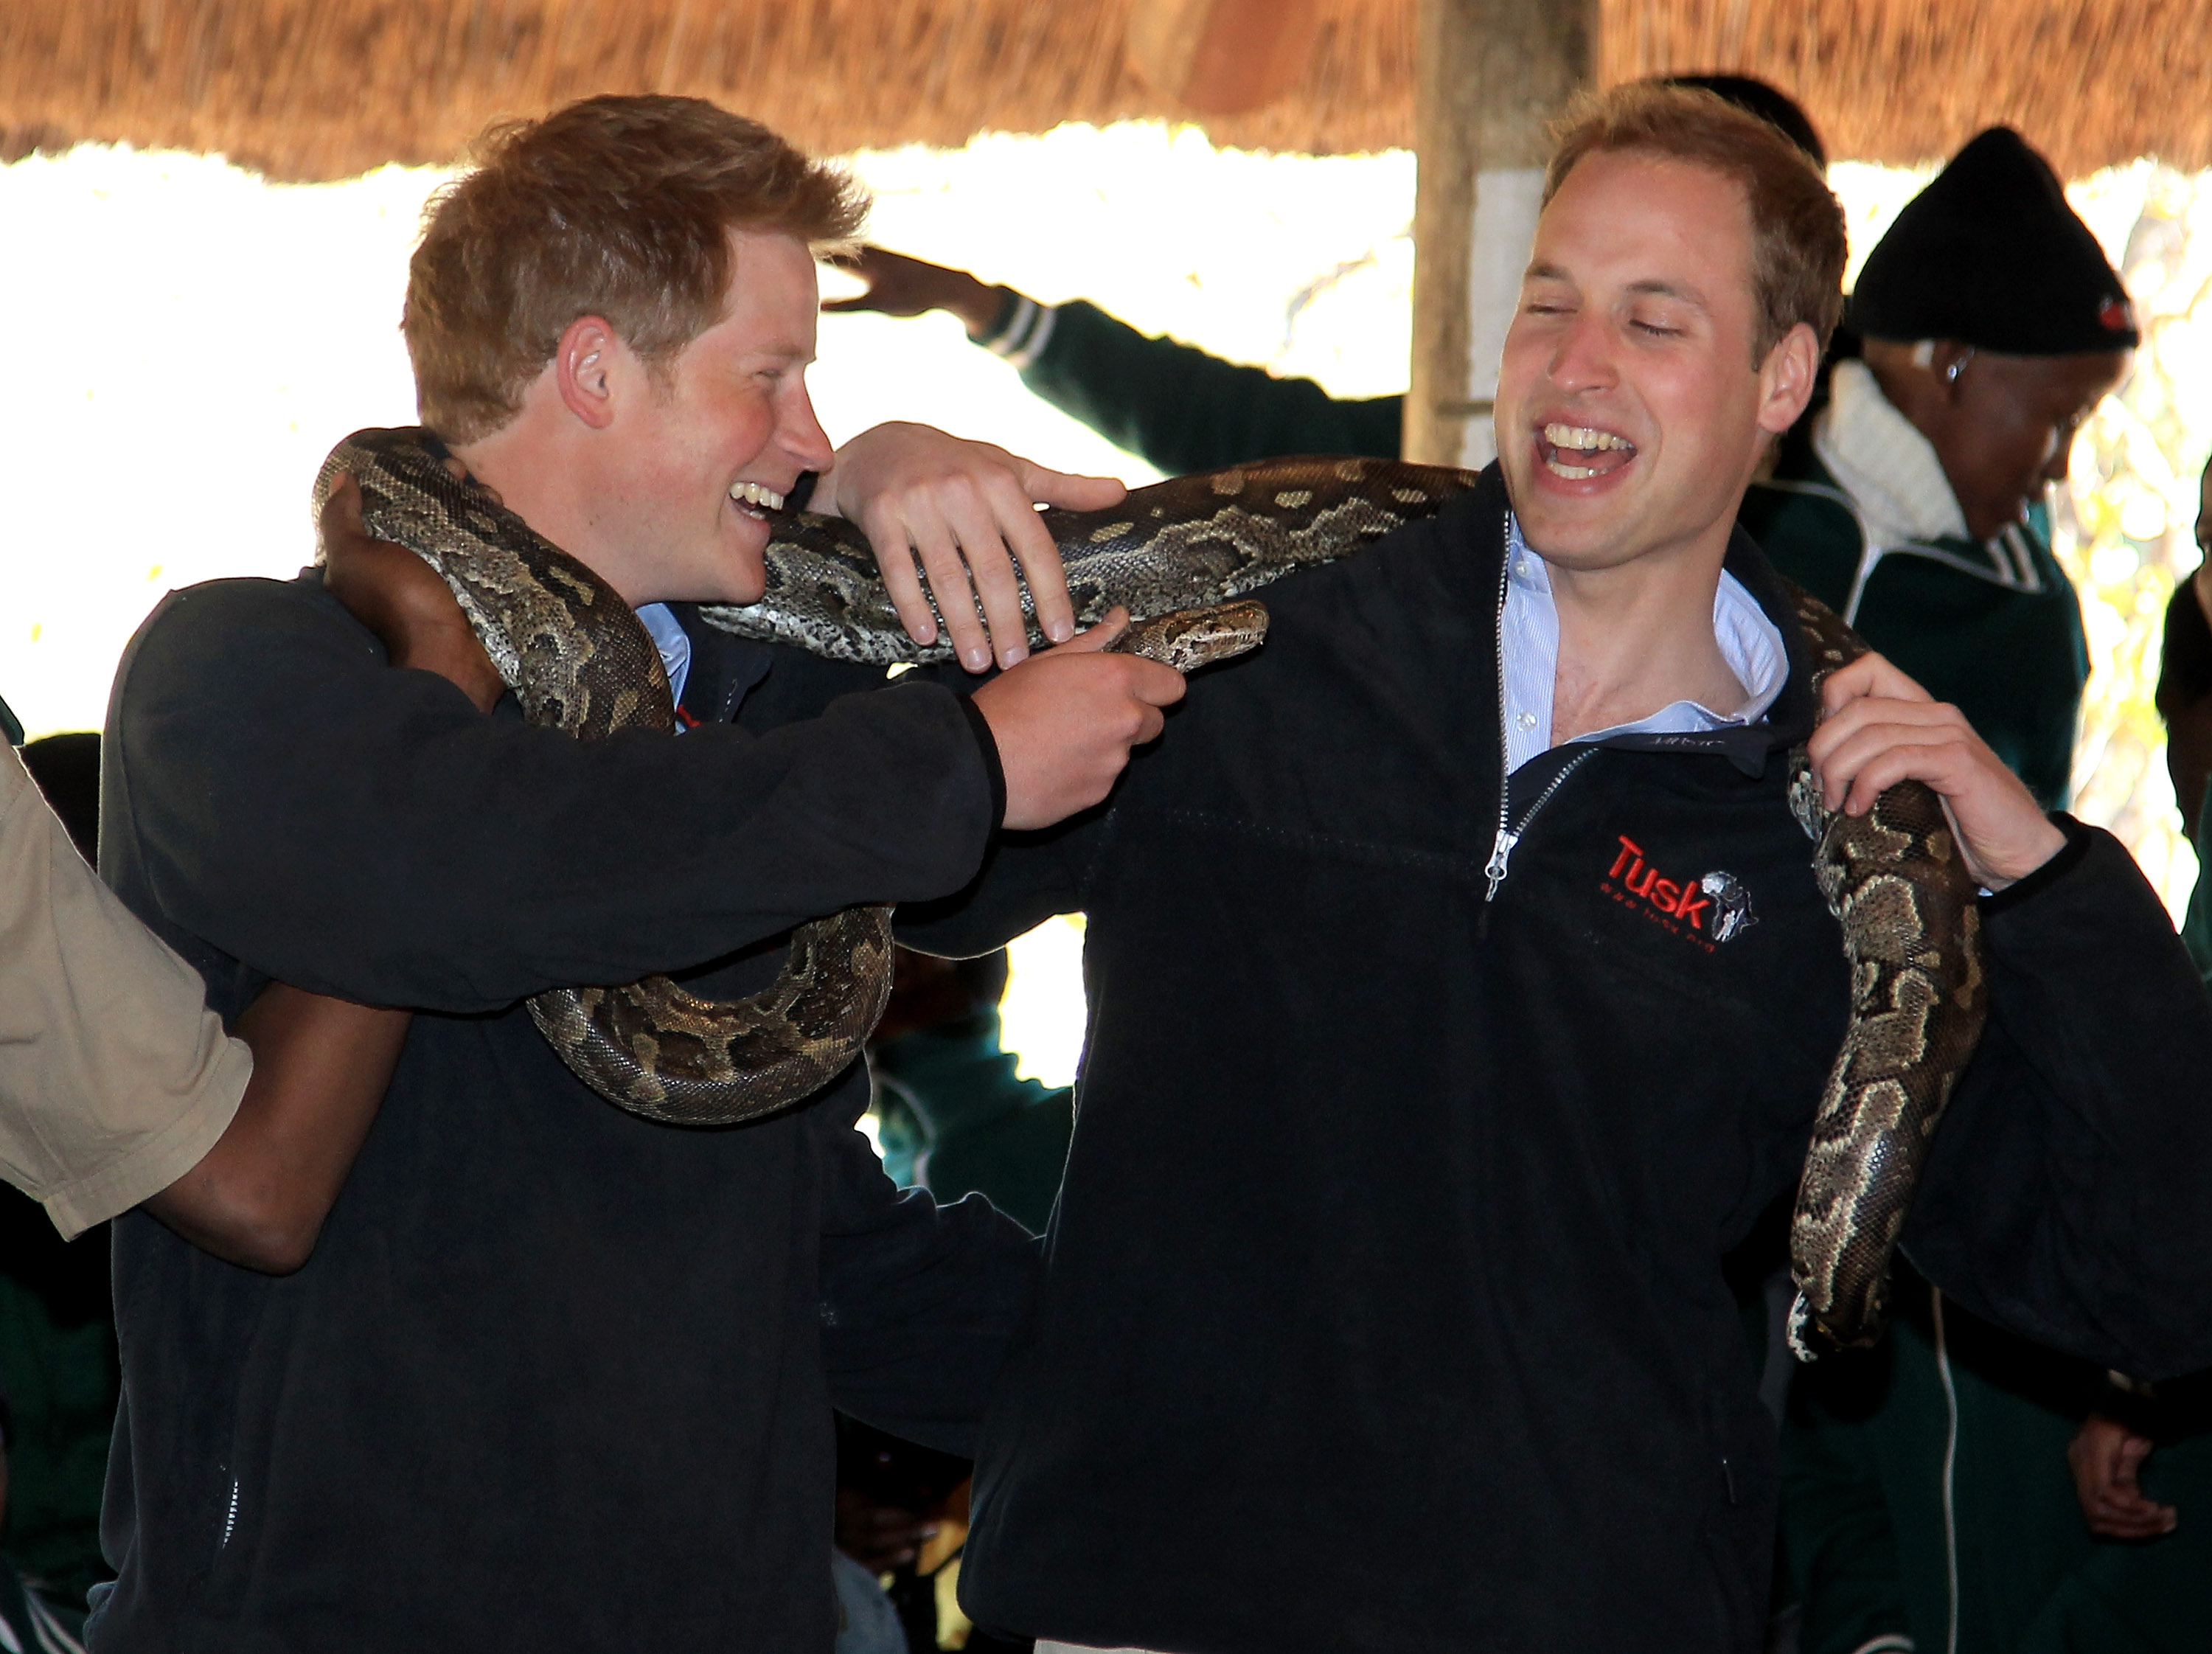 Prince Harry and Prince William (R) hold an African rock python during a visit to Mokolodi Education Centre on June 15, 2010 in Gaborone, Botswana.